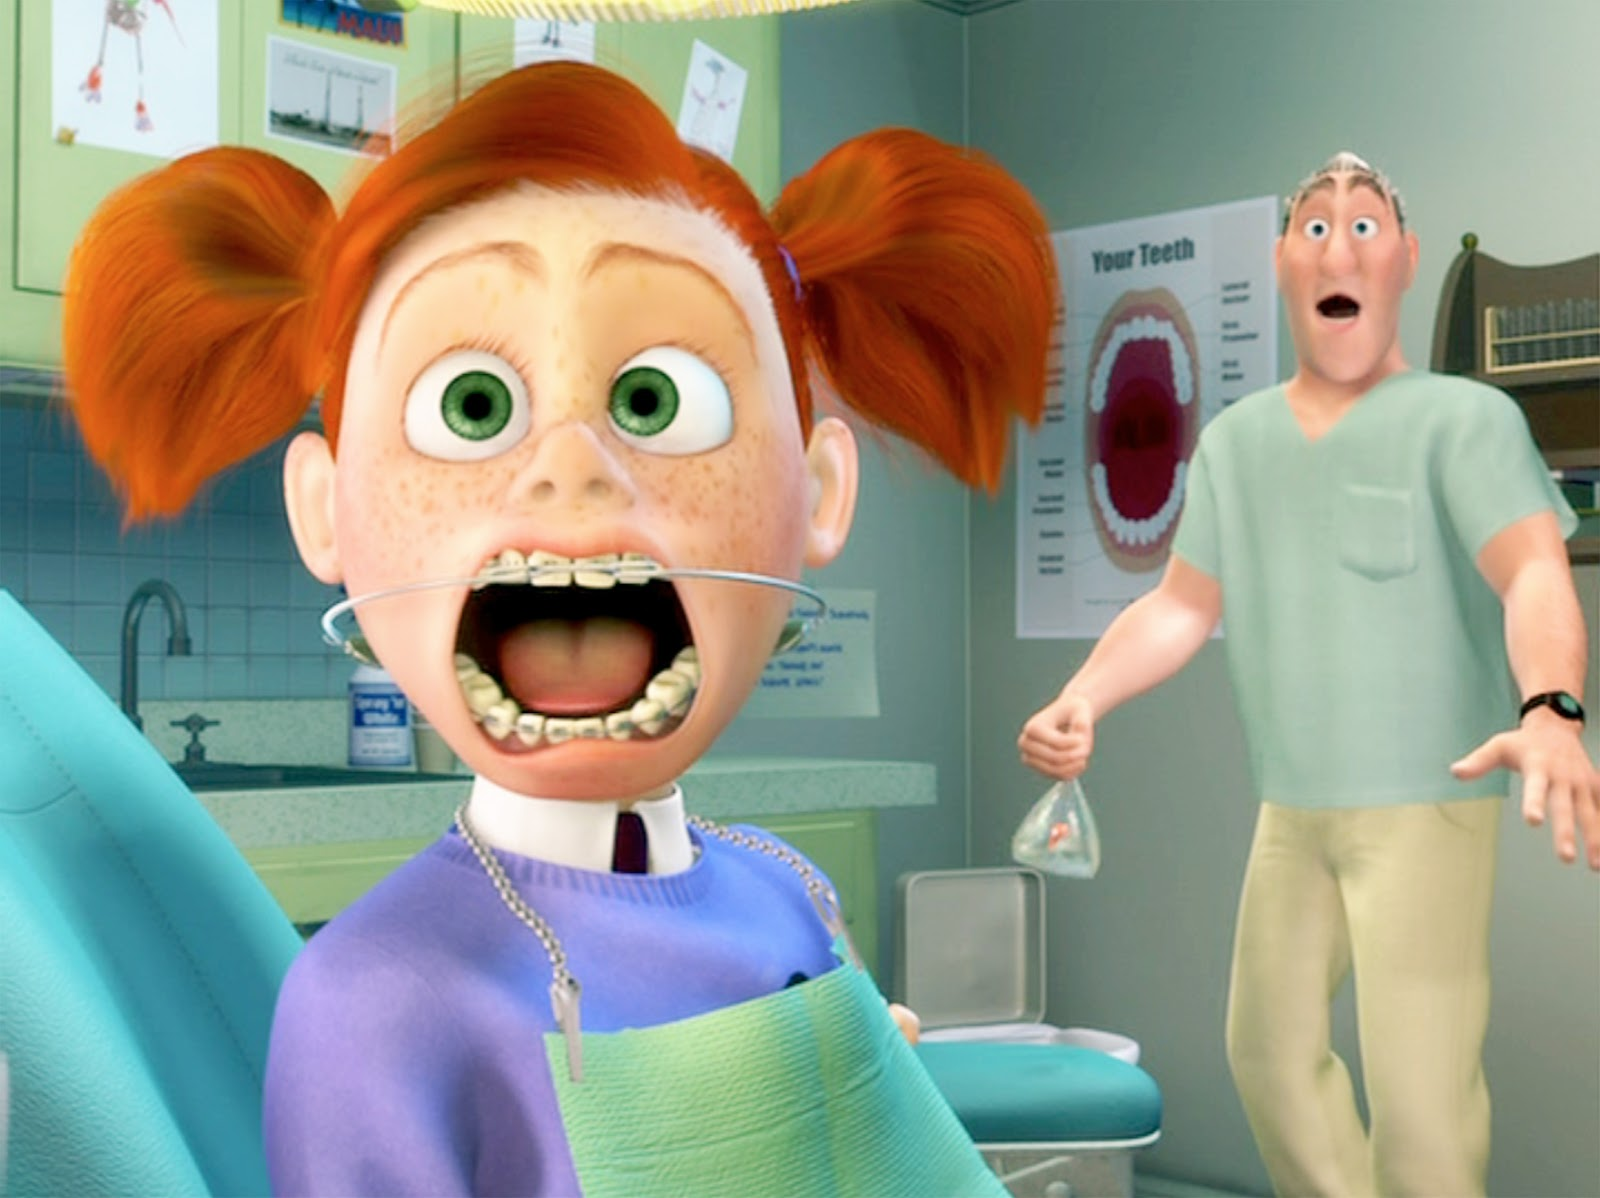 dentist from finding nemo